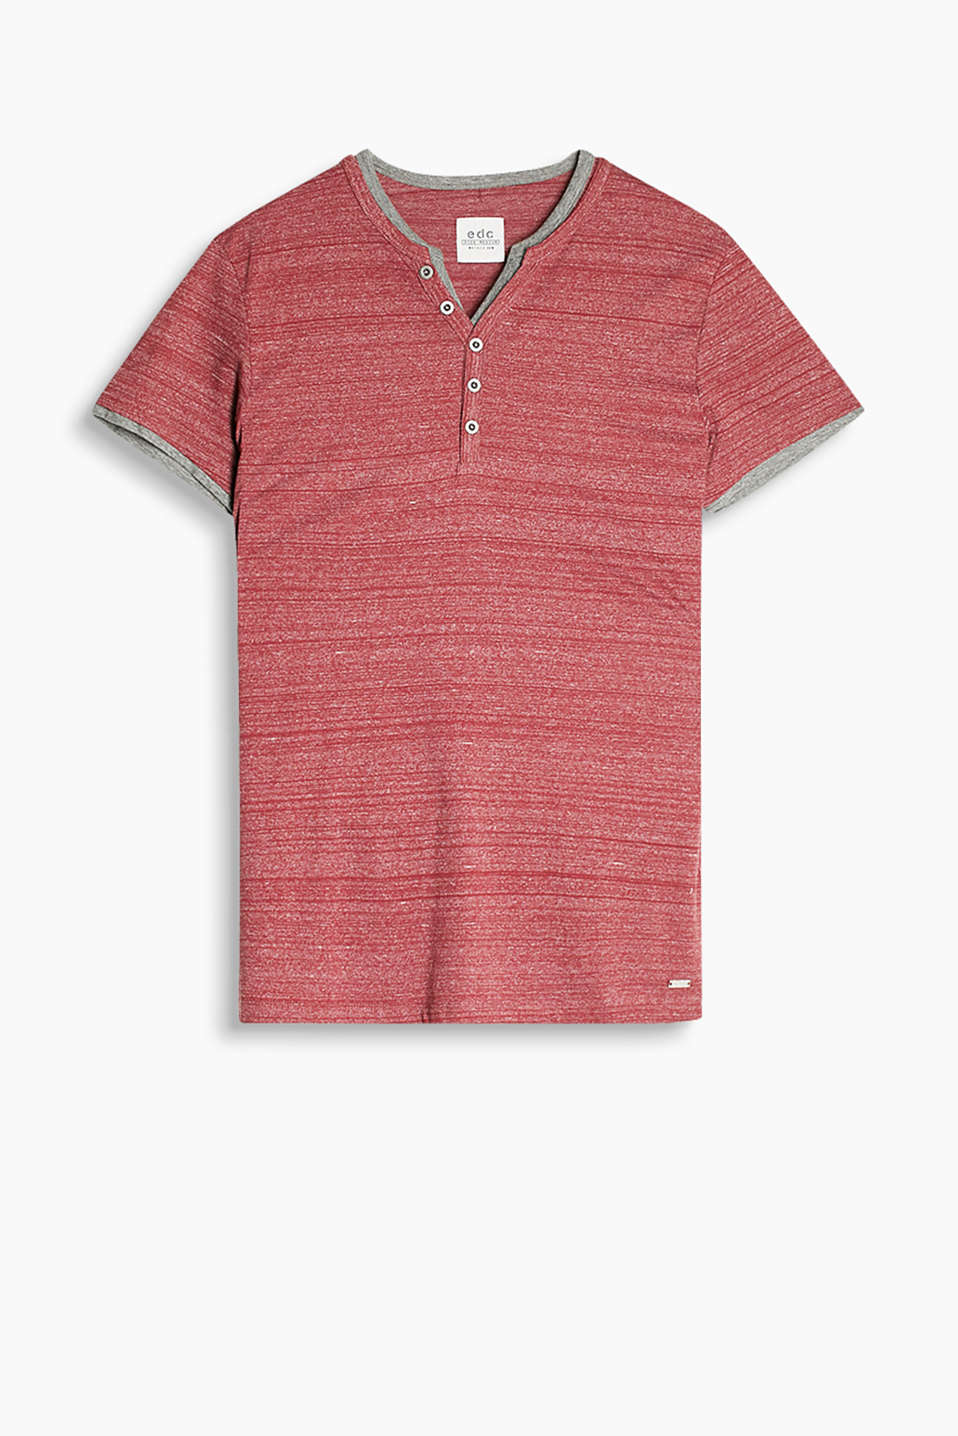 Henley-style T-shirt in blended cotton with a layered effect